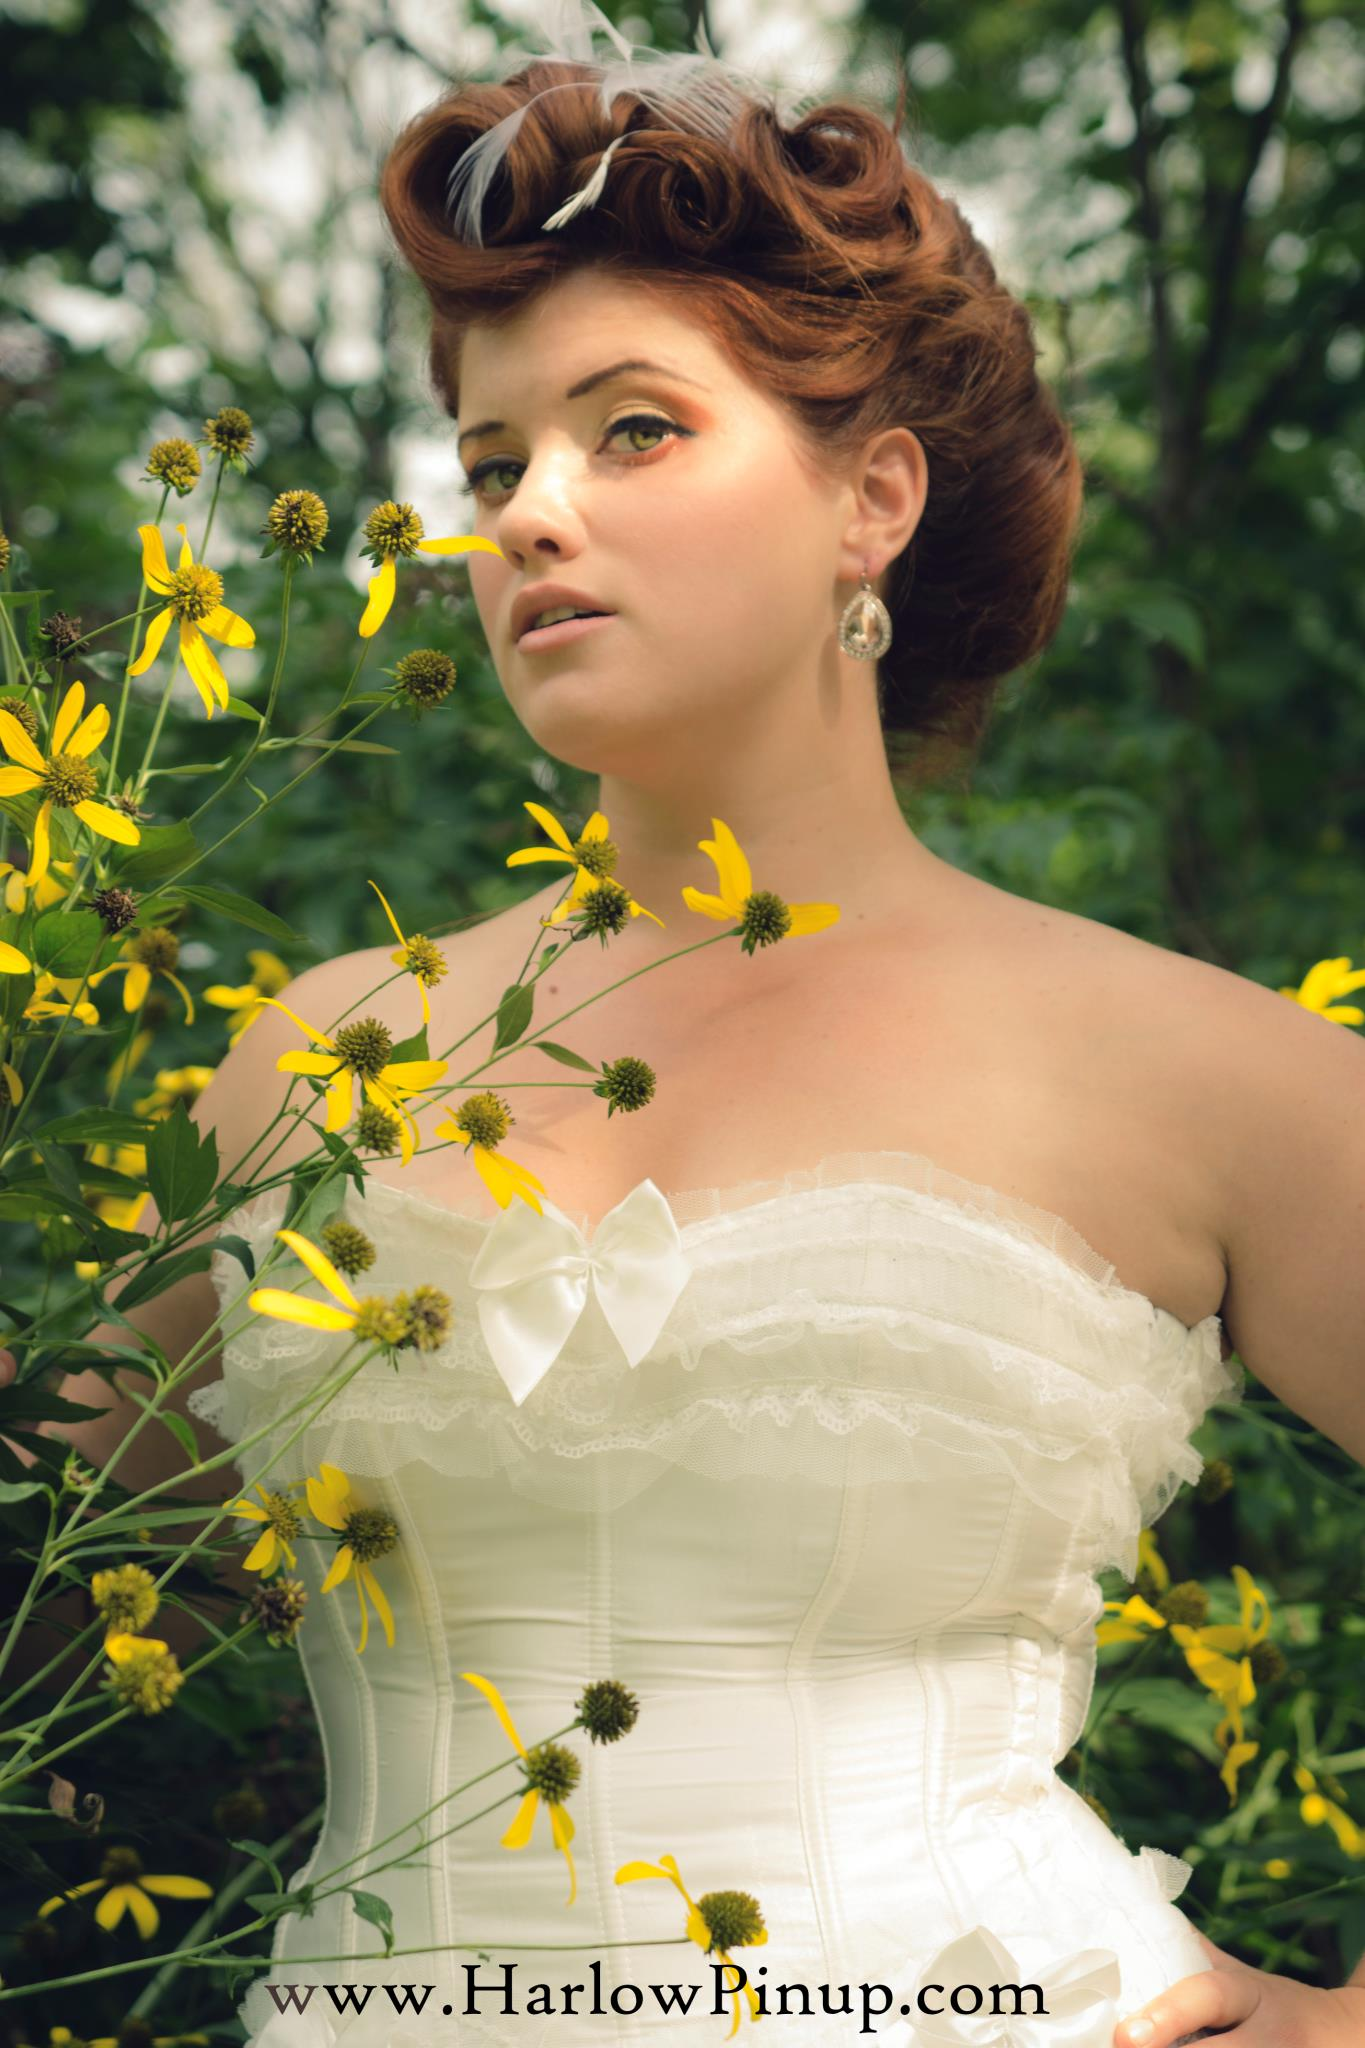 Country Outdoors Bride Sunflowers